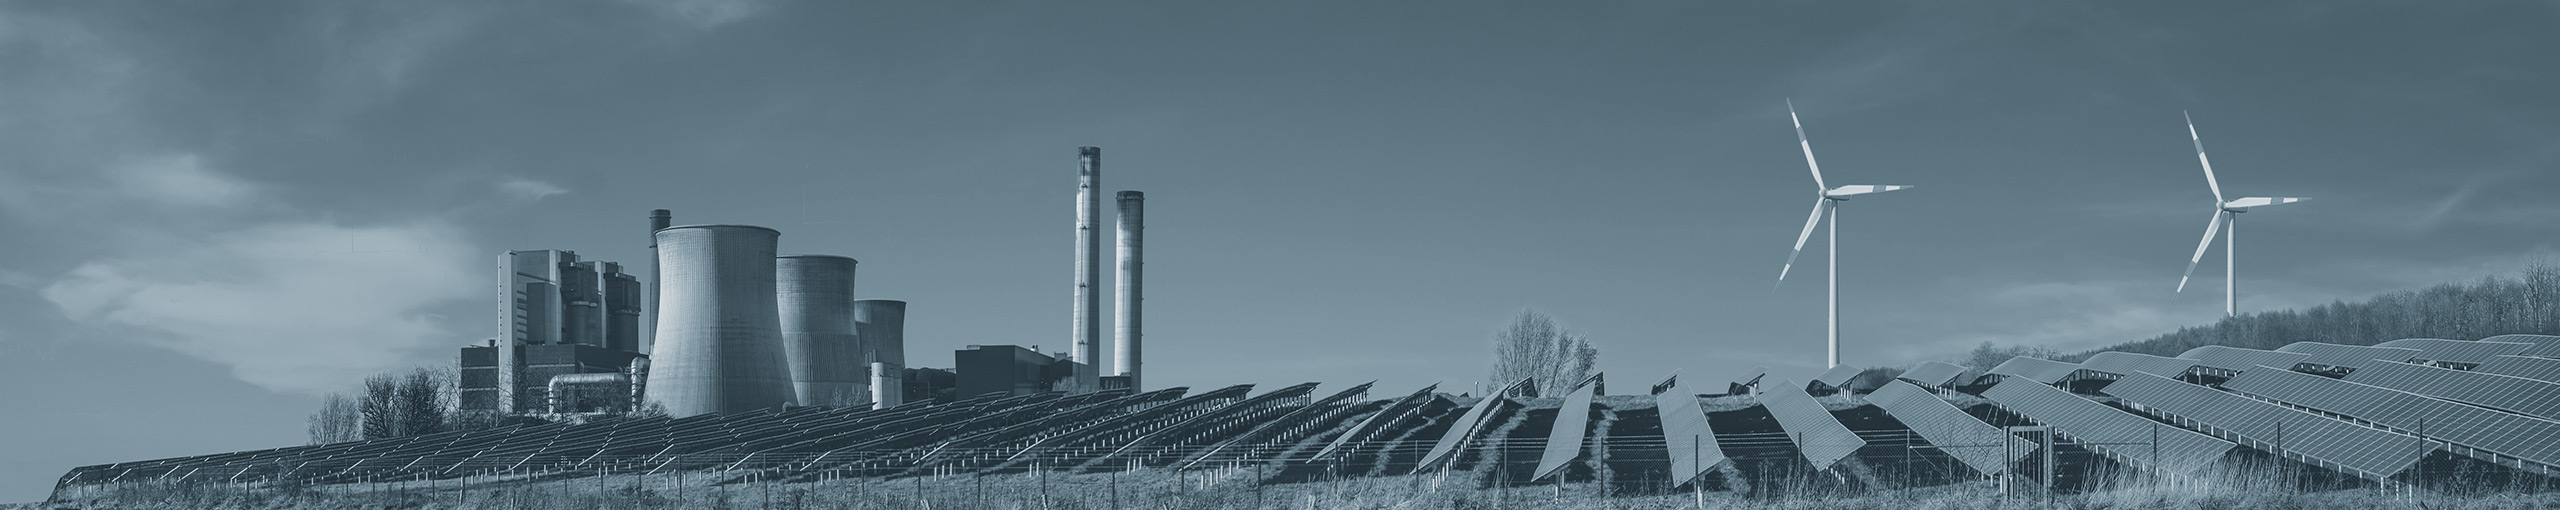 Conventional Clean Energy Image